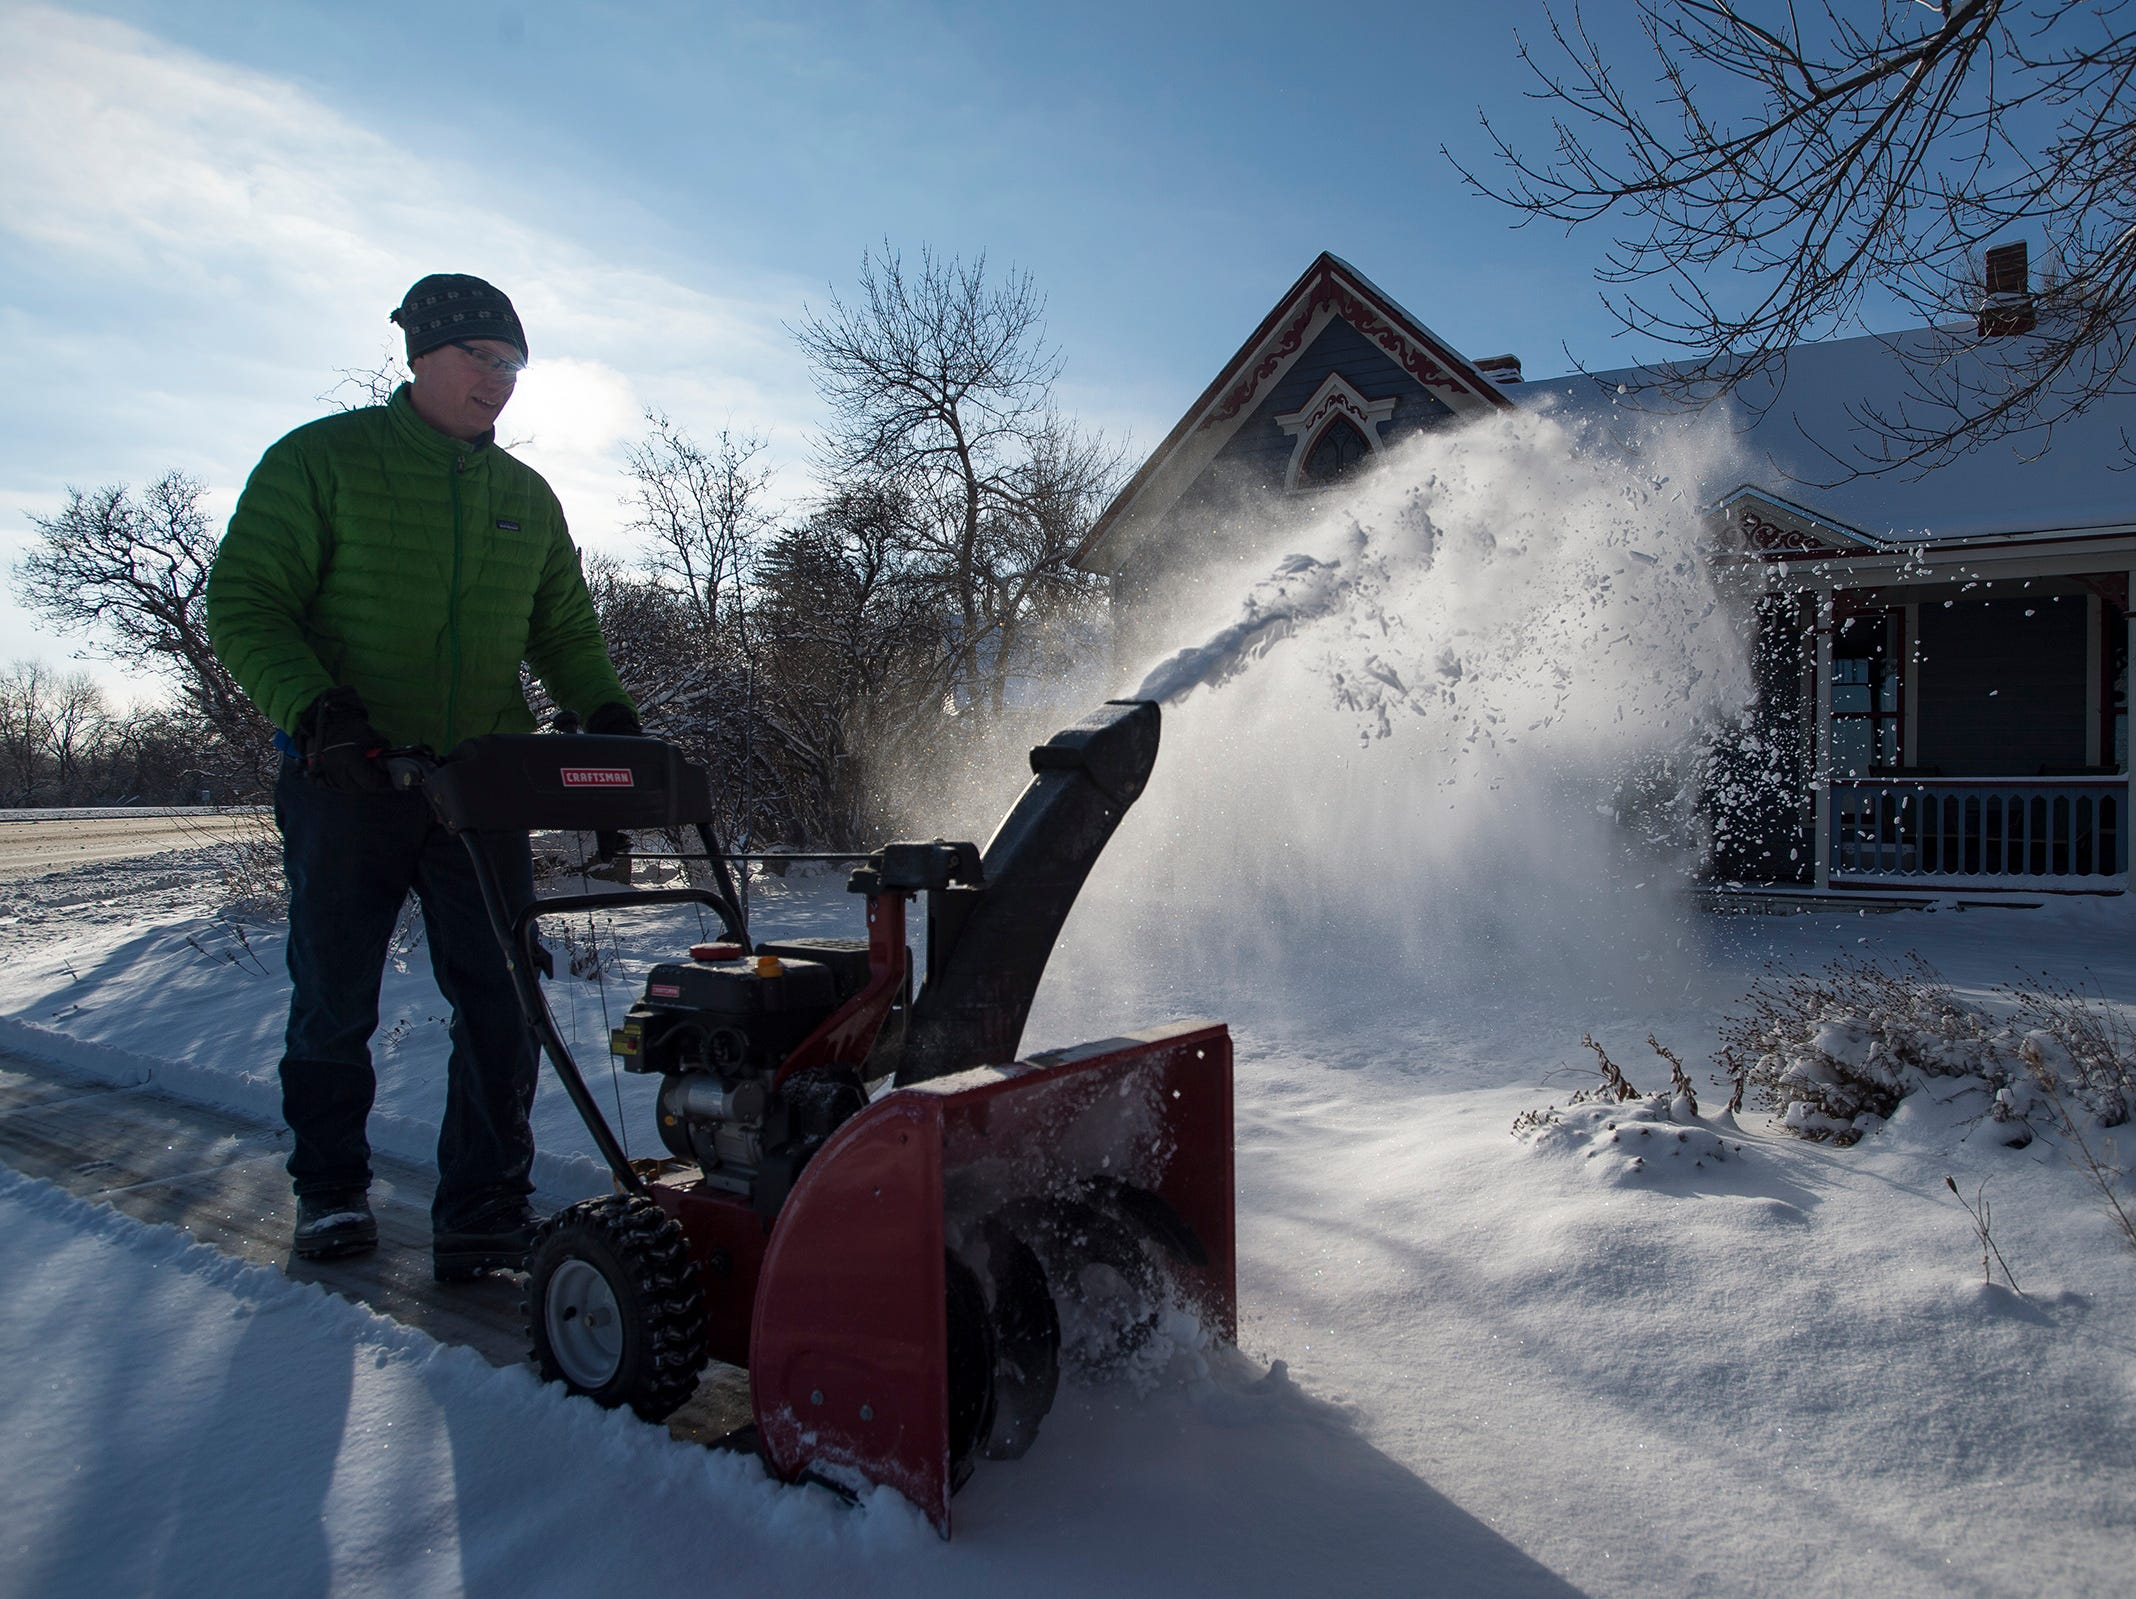 Fort Collins resident Sean Windsor runs his snowblower down his neighbor's sidewalk on Tuesday morning, Feb. 20, 2018, in Fort Collins, Colo.